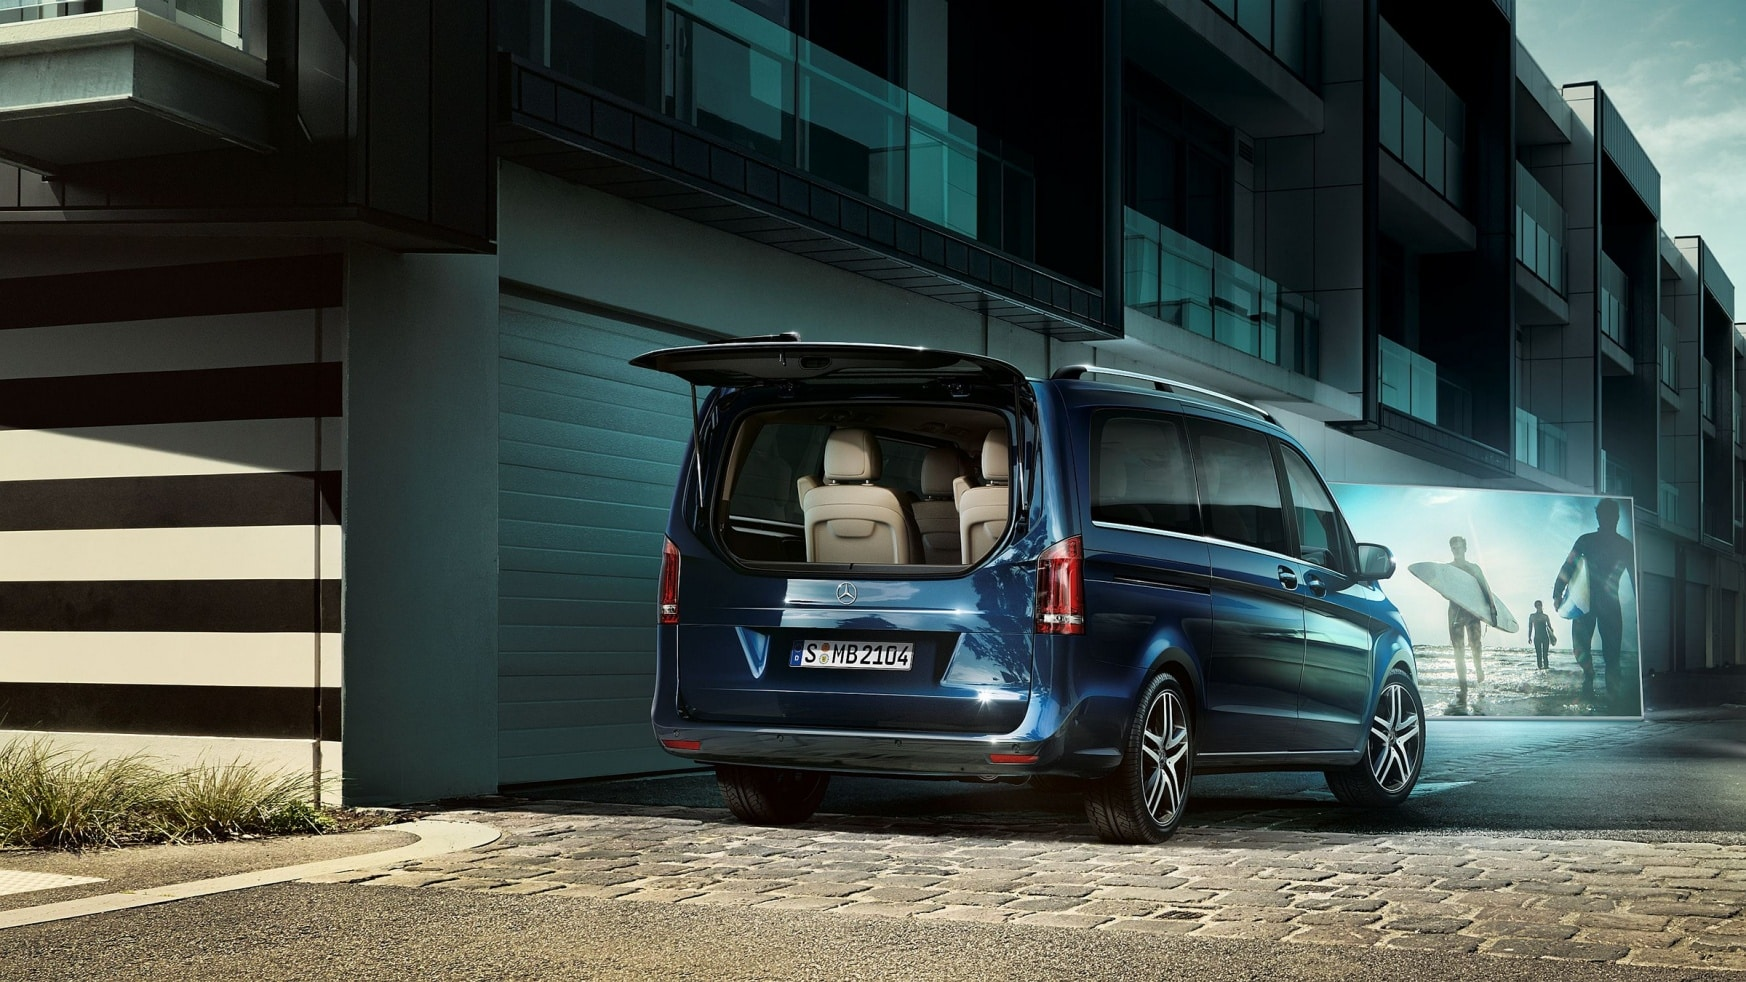 V-Class, Highlights, Features, Storage, Impressive cargo capacity